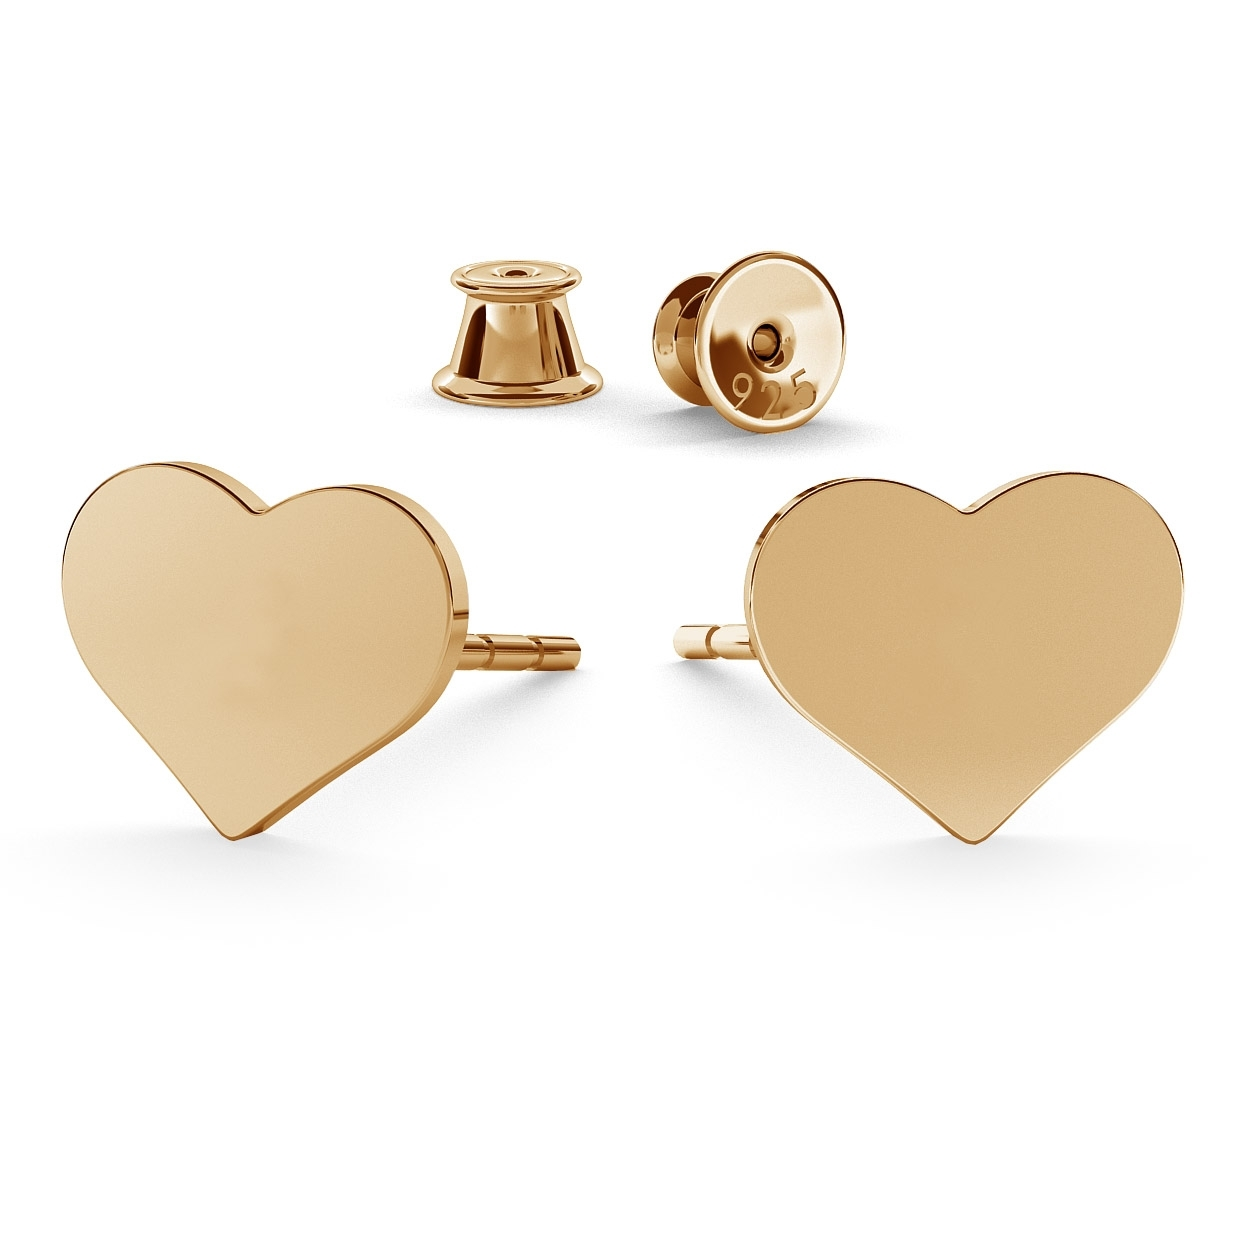 HEART EARRINGS WITH ENGRAVED, STERLING SILVER (925) RHODIUM OR GOLD PLATED